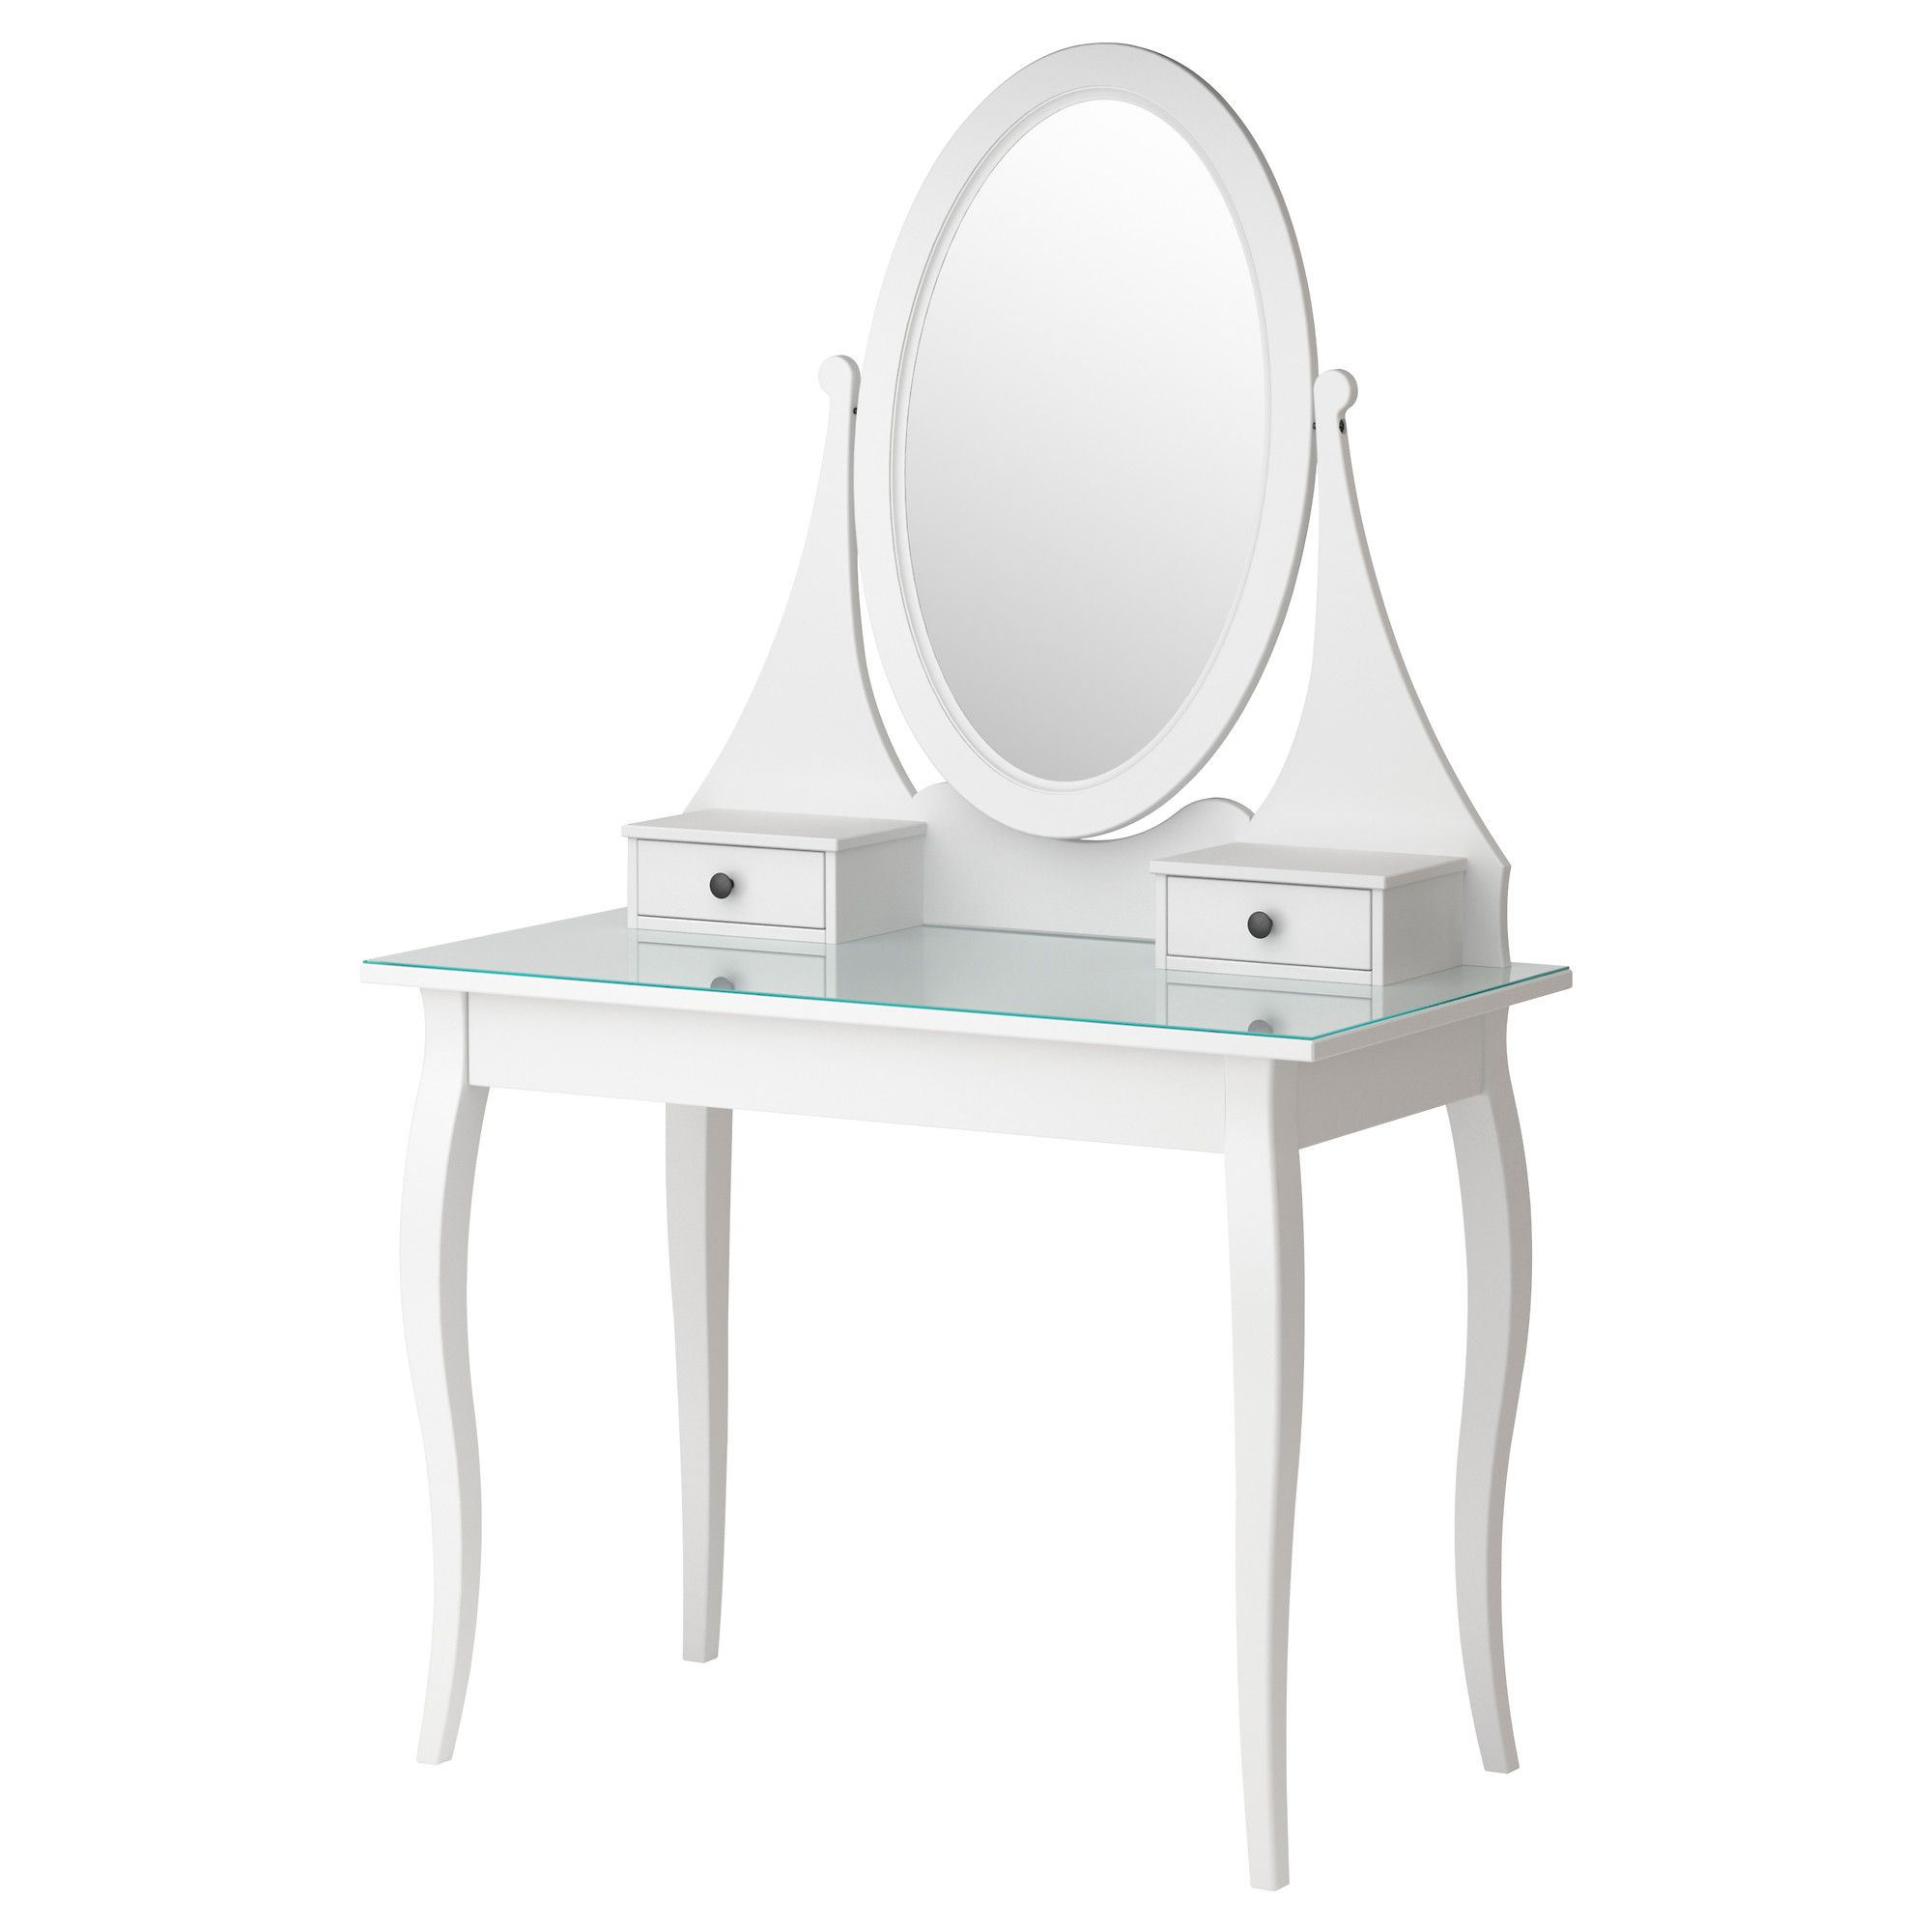 Hemnes dressing table with mirror ikea width 39 3 8 - Hemnes dressing table with mirror white ...